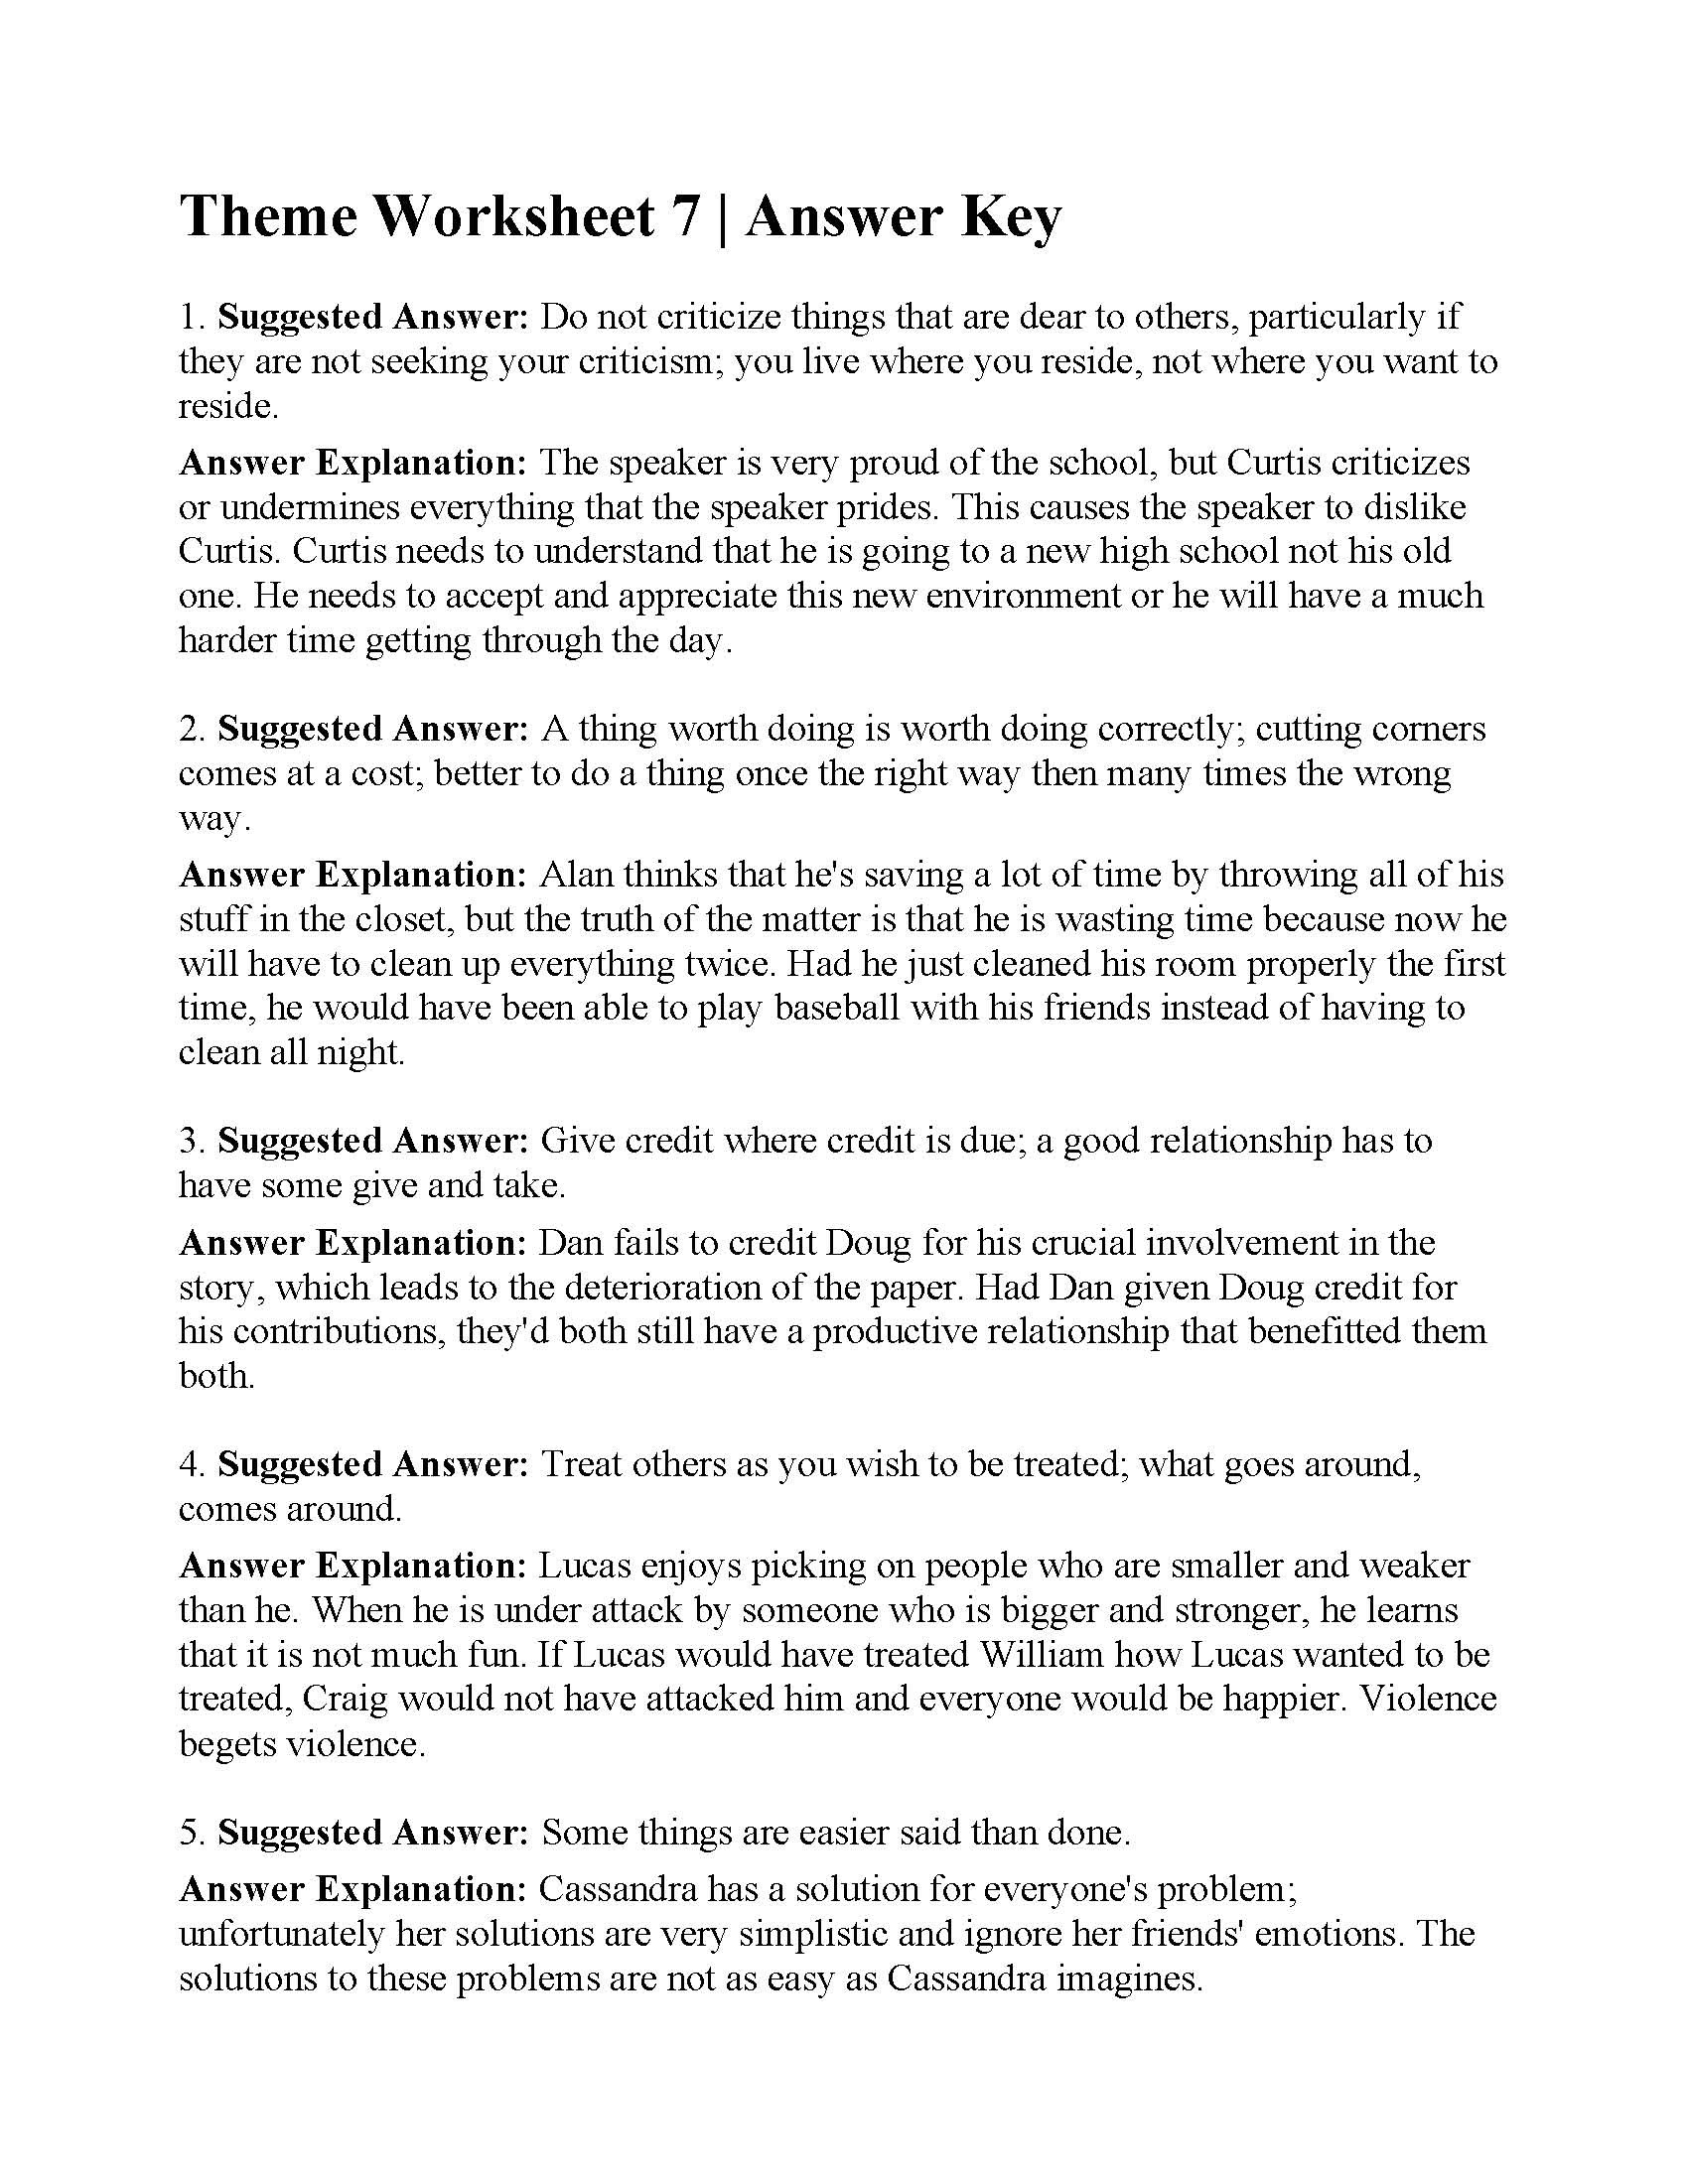 Theme Worksheets Grade 5 theme Worksheet 7